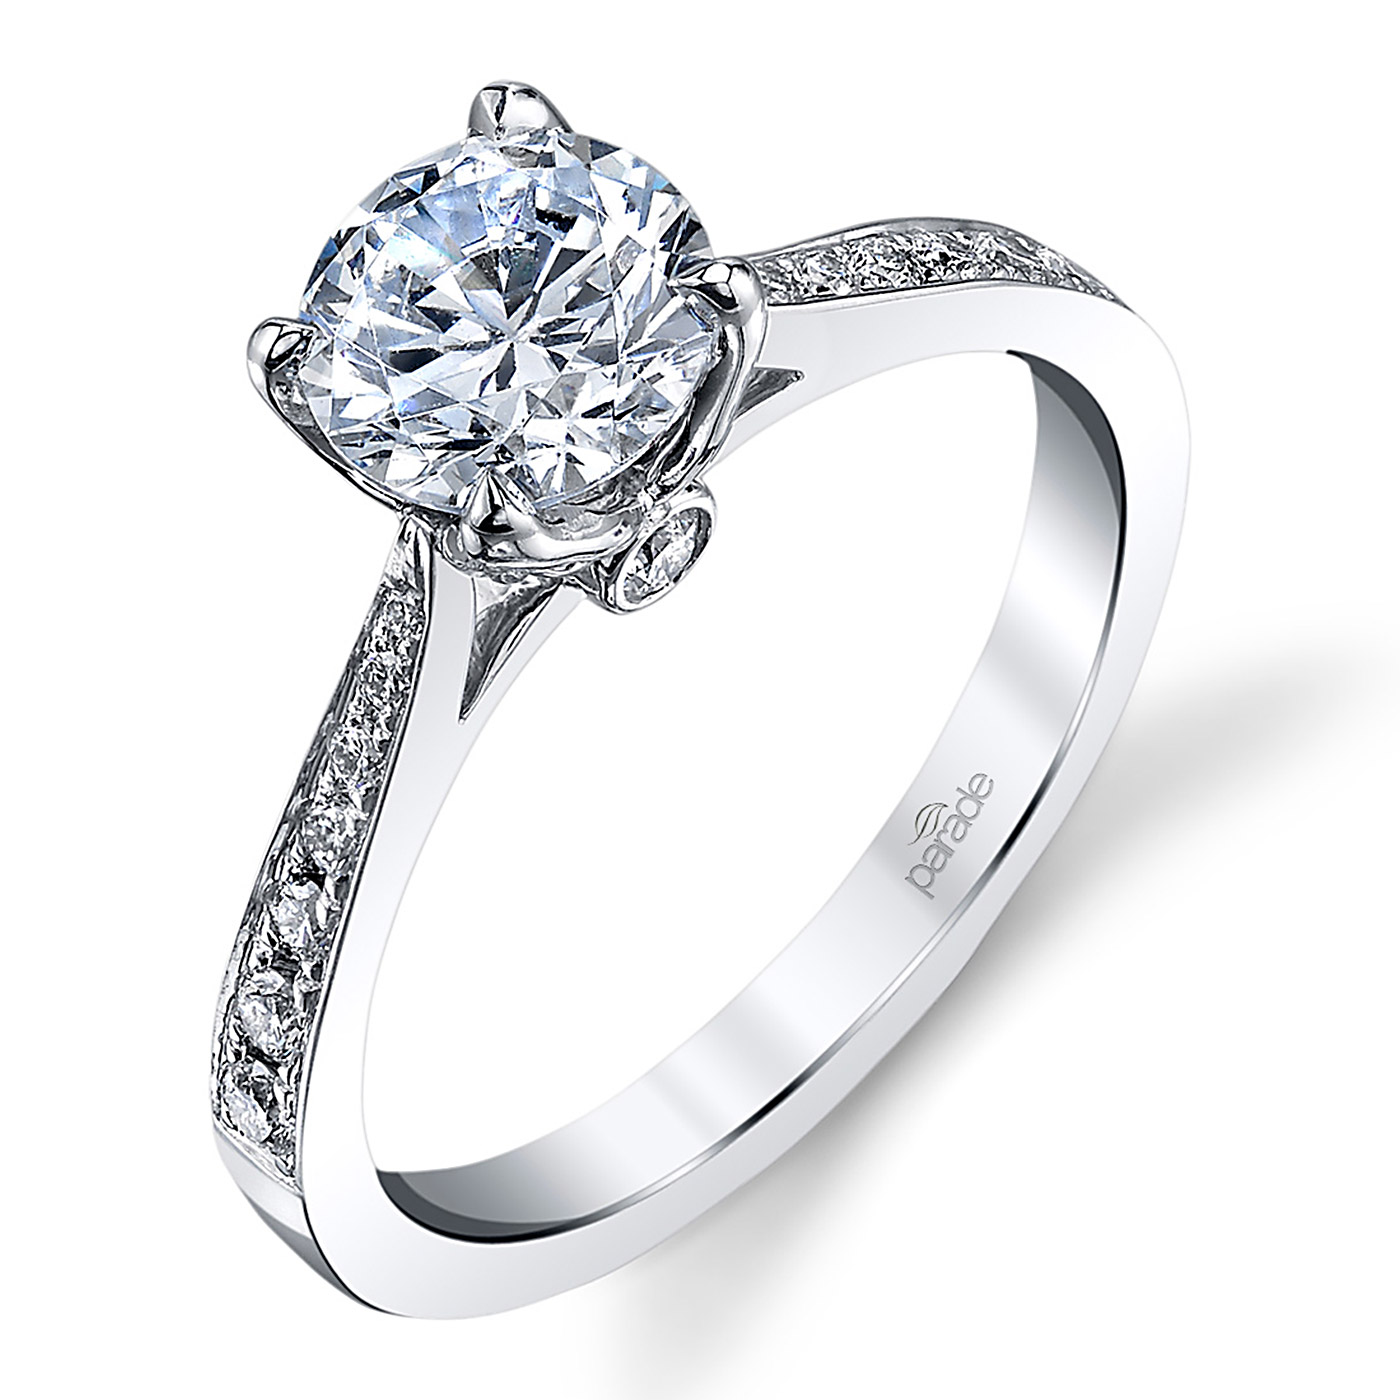 Parade New Classic 18 Karat Diamond Engagement Ring R3929